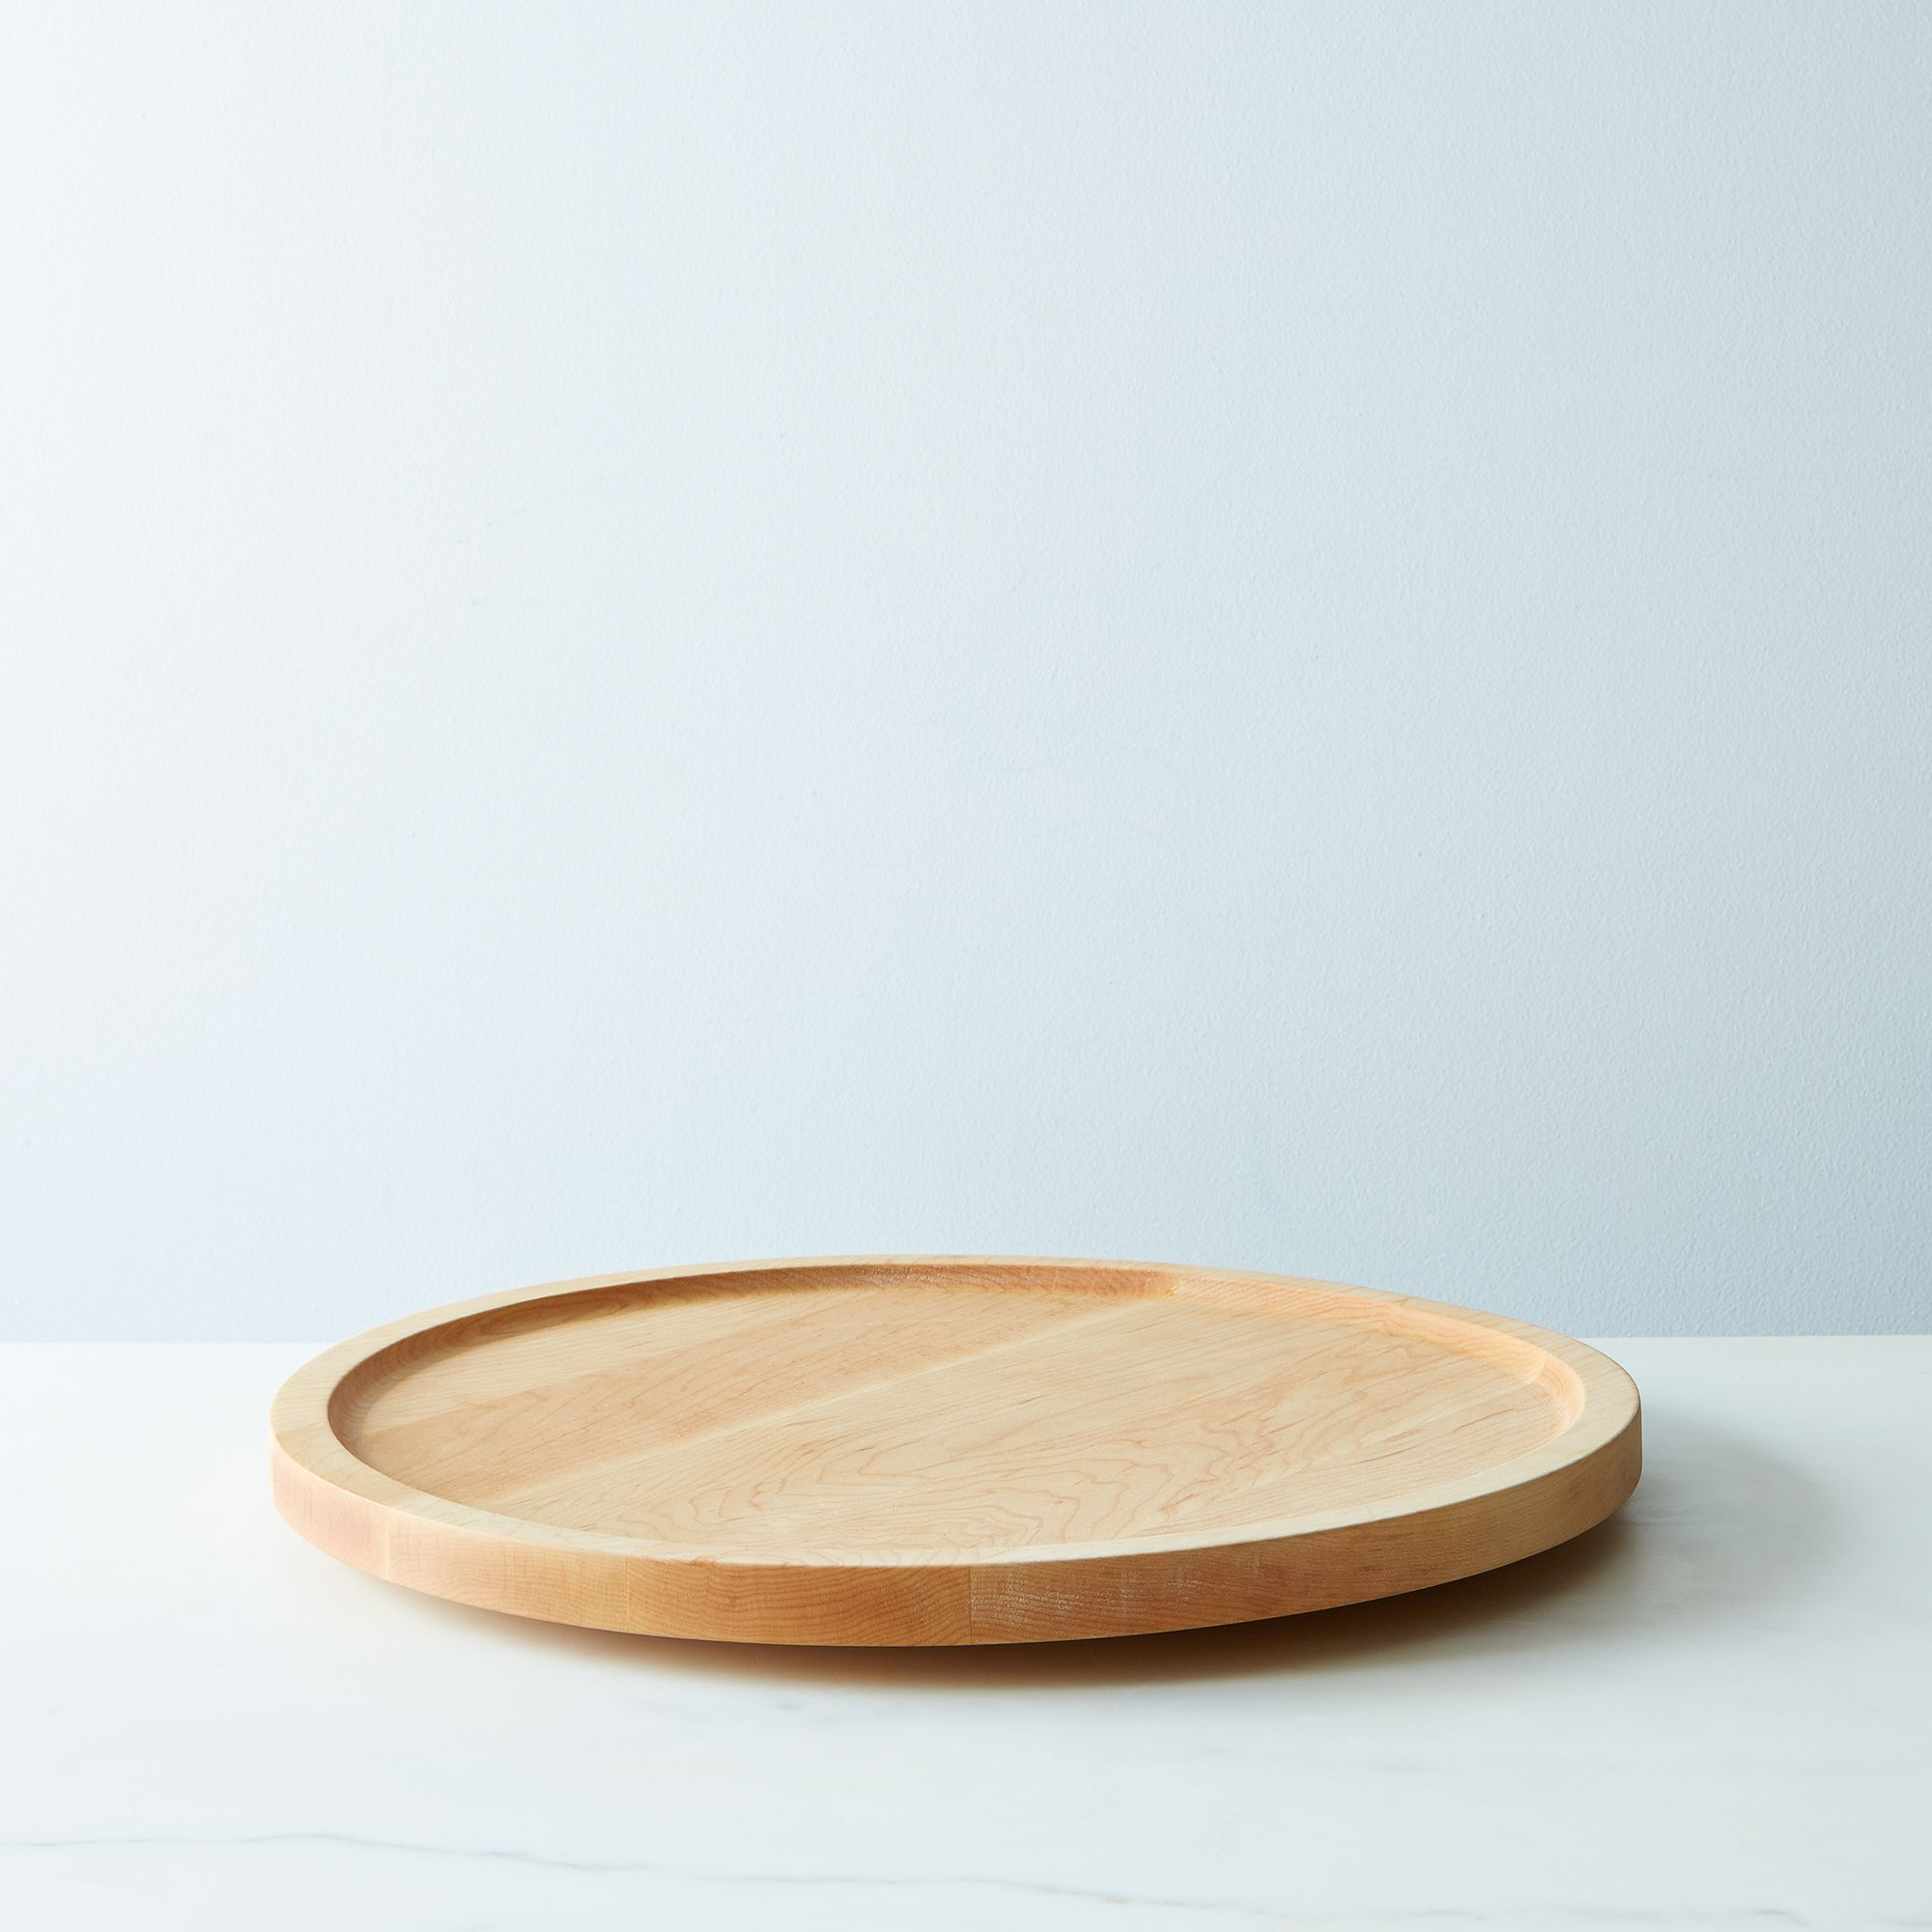 80b71656 a0f6 11e5 a190 0ef7535729df  brooklyn handicraft lazy susan maple provisions mark weinberg 30 06 14 0123 silo